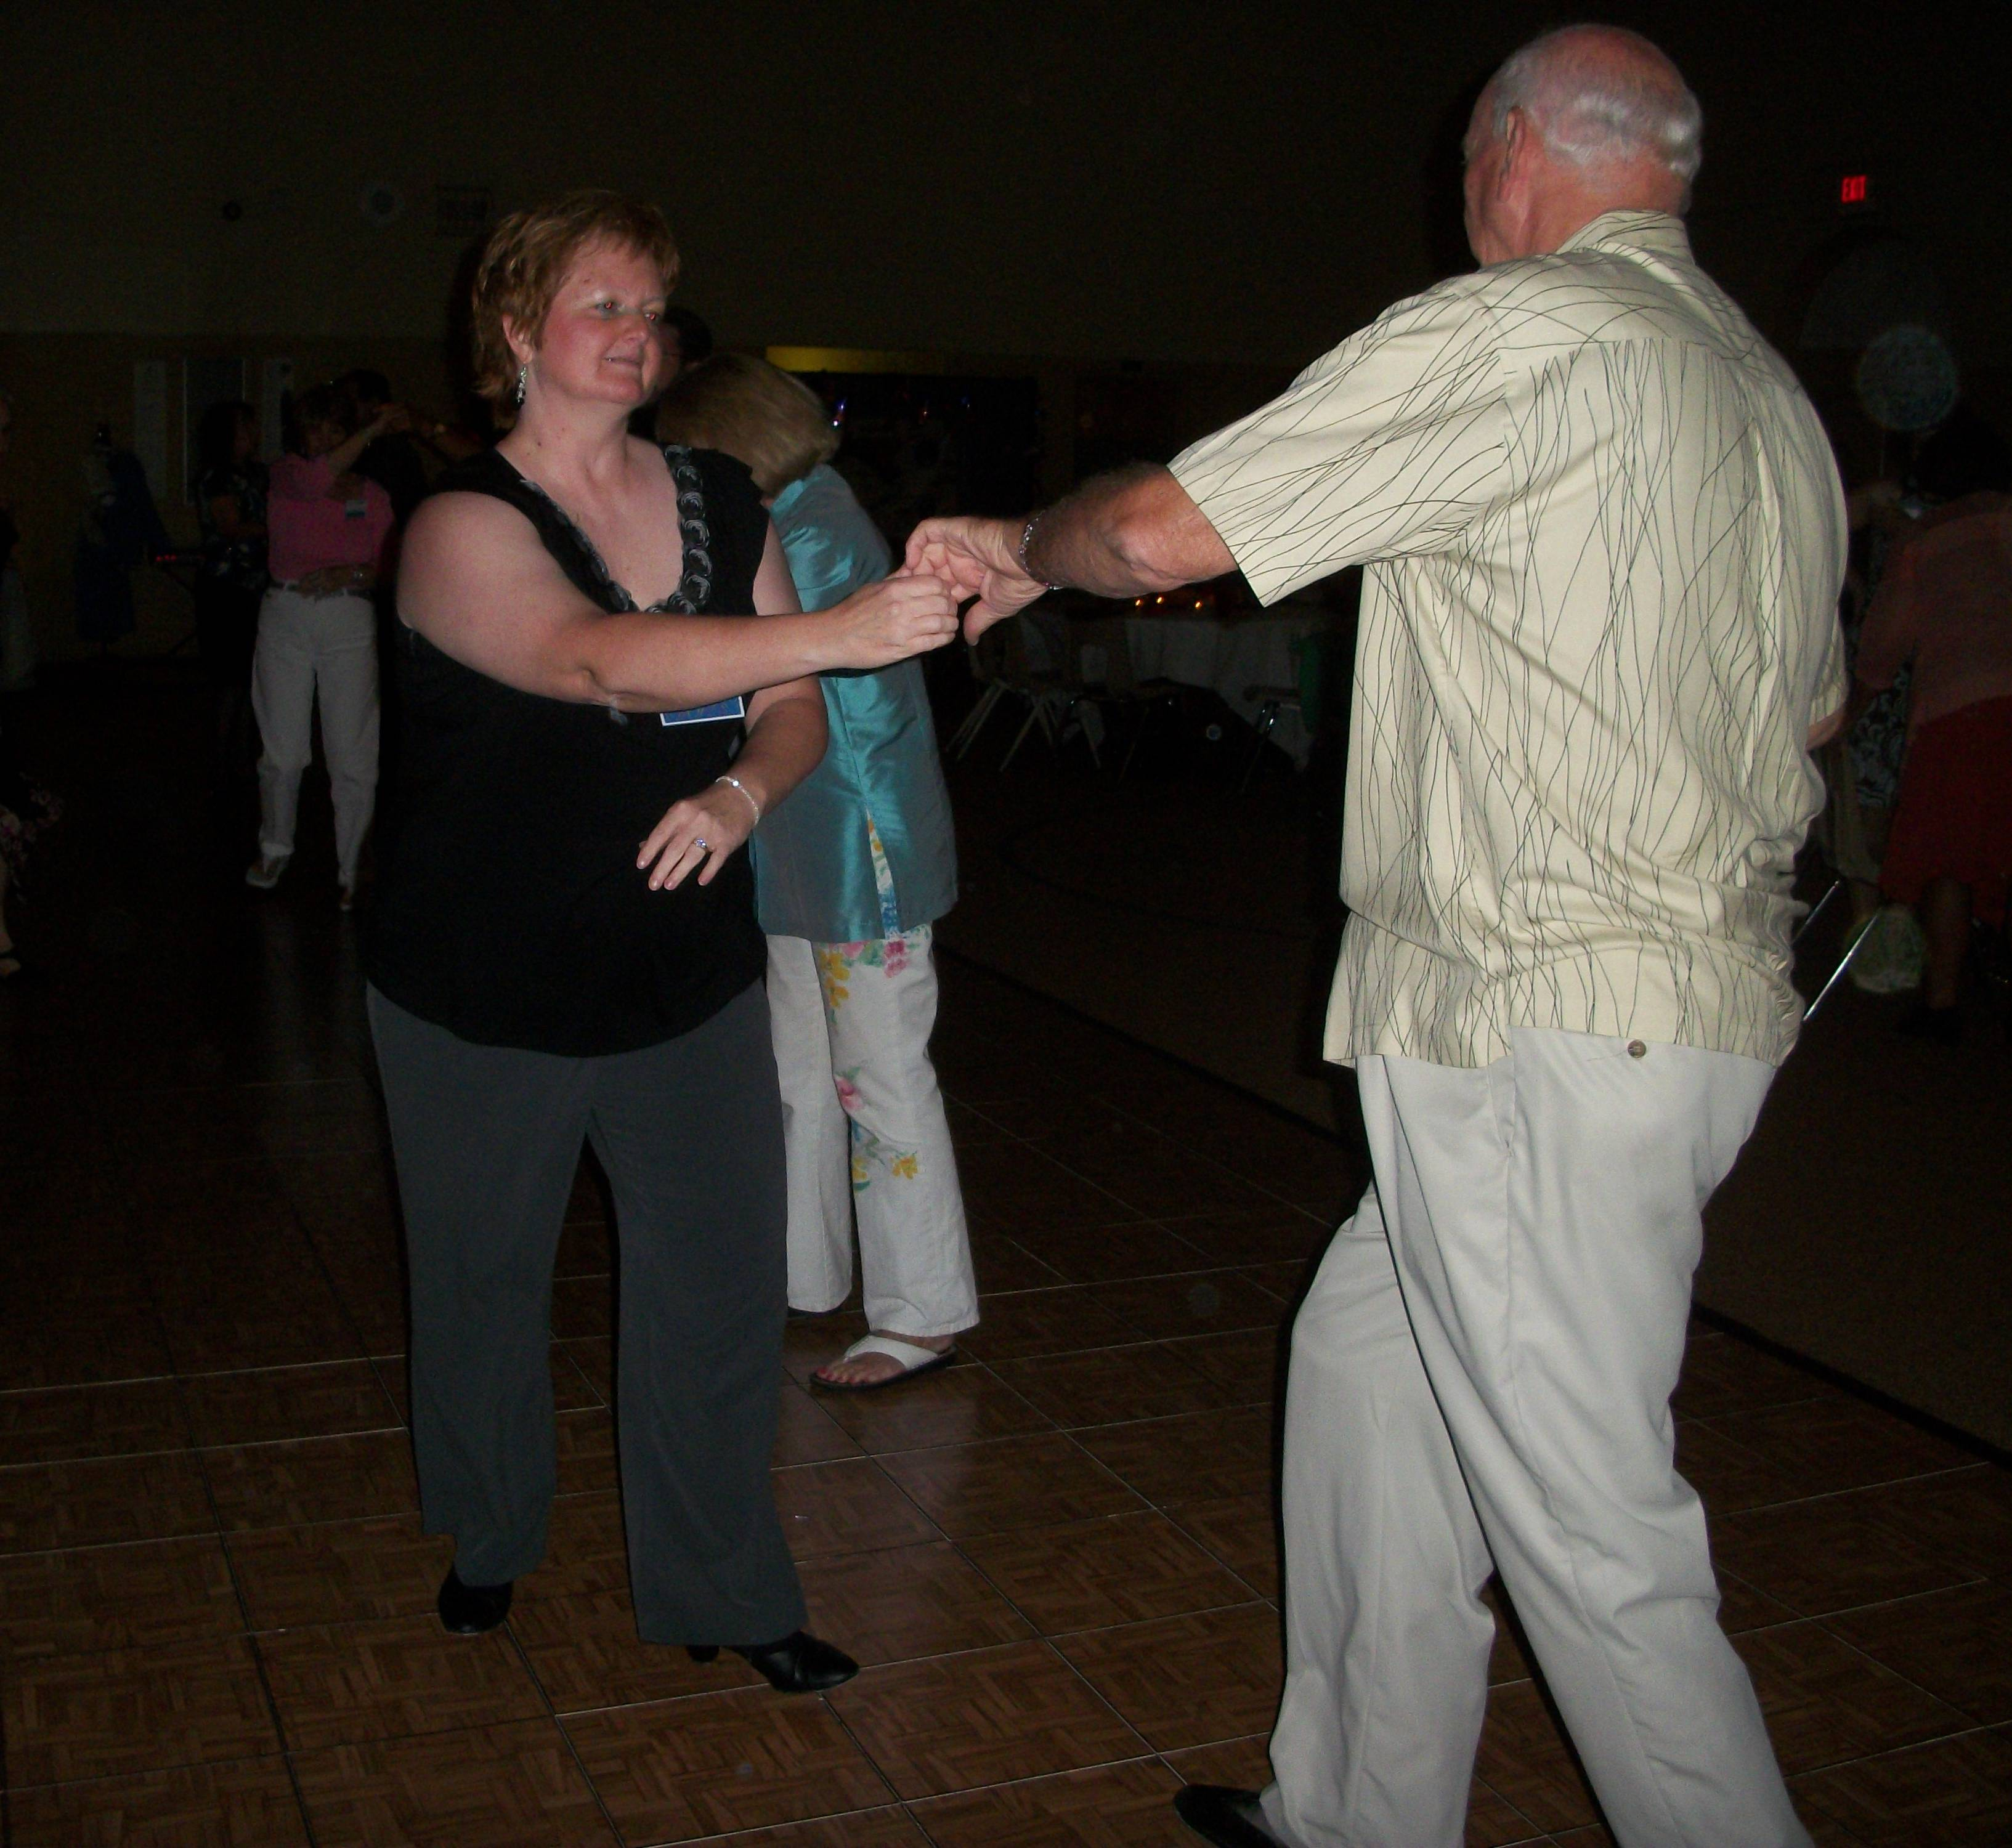 Brentwood tennessee and singles and dancing Champion Ballroom Center - Home